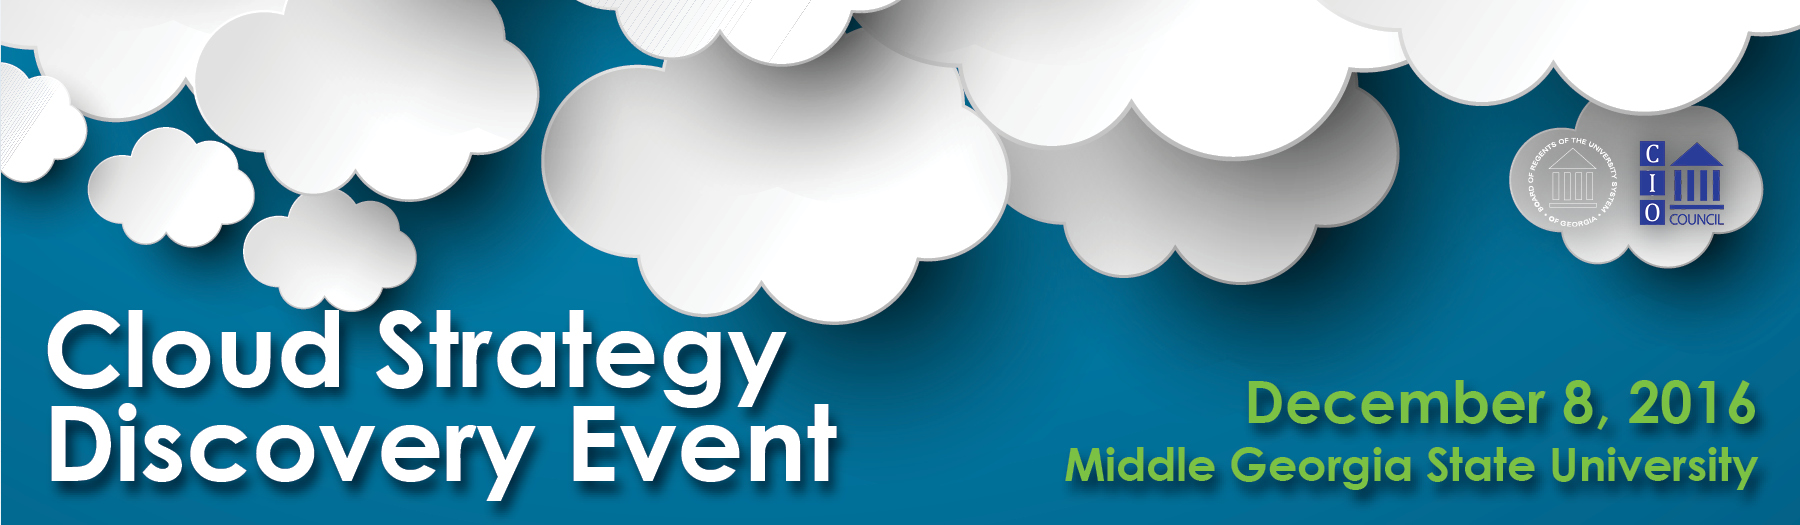 Cloud Strategy Discovery Event 11-2-16